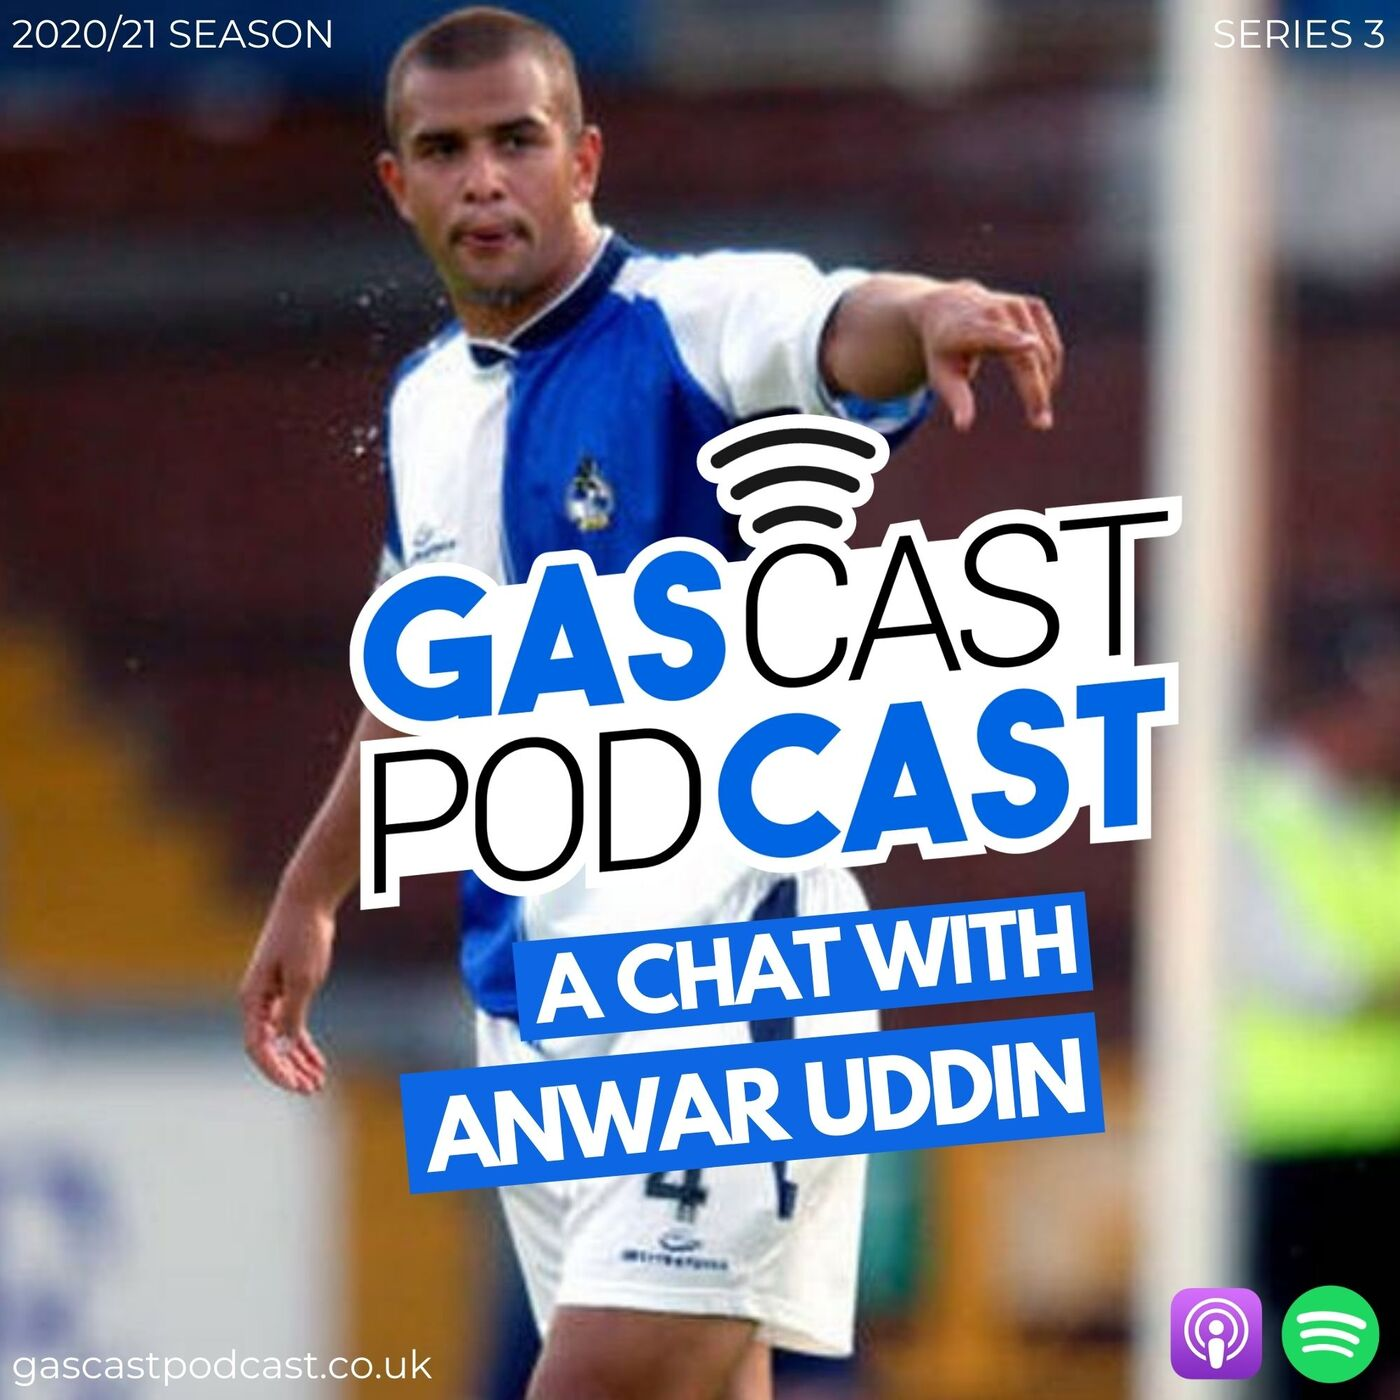 A CHAT WITH: Anwar Uddin